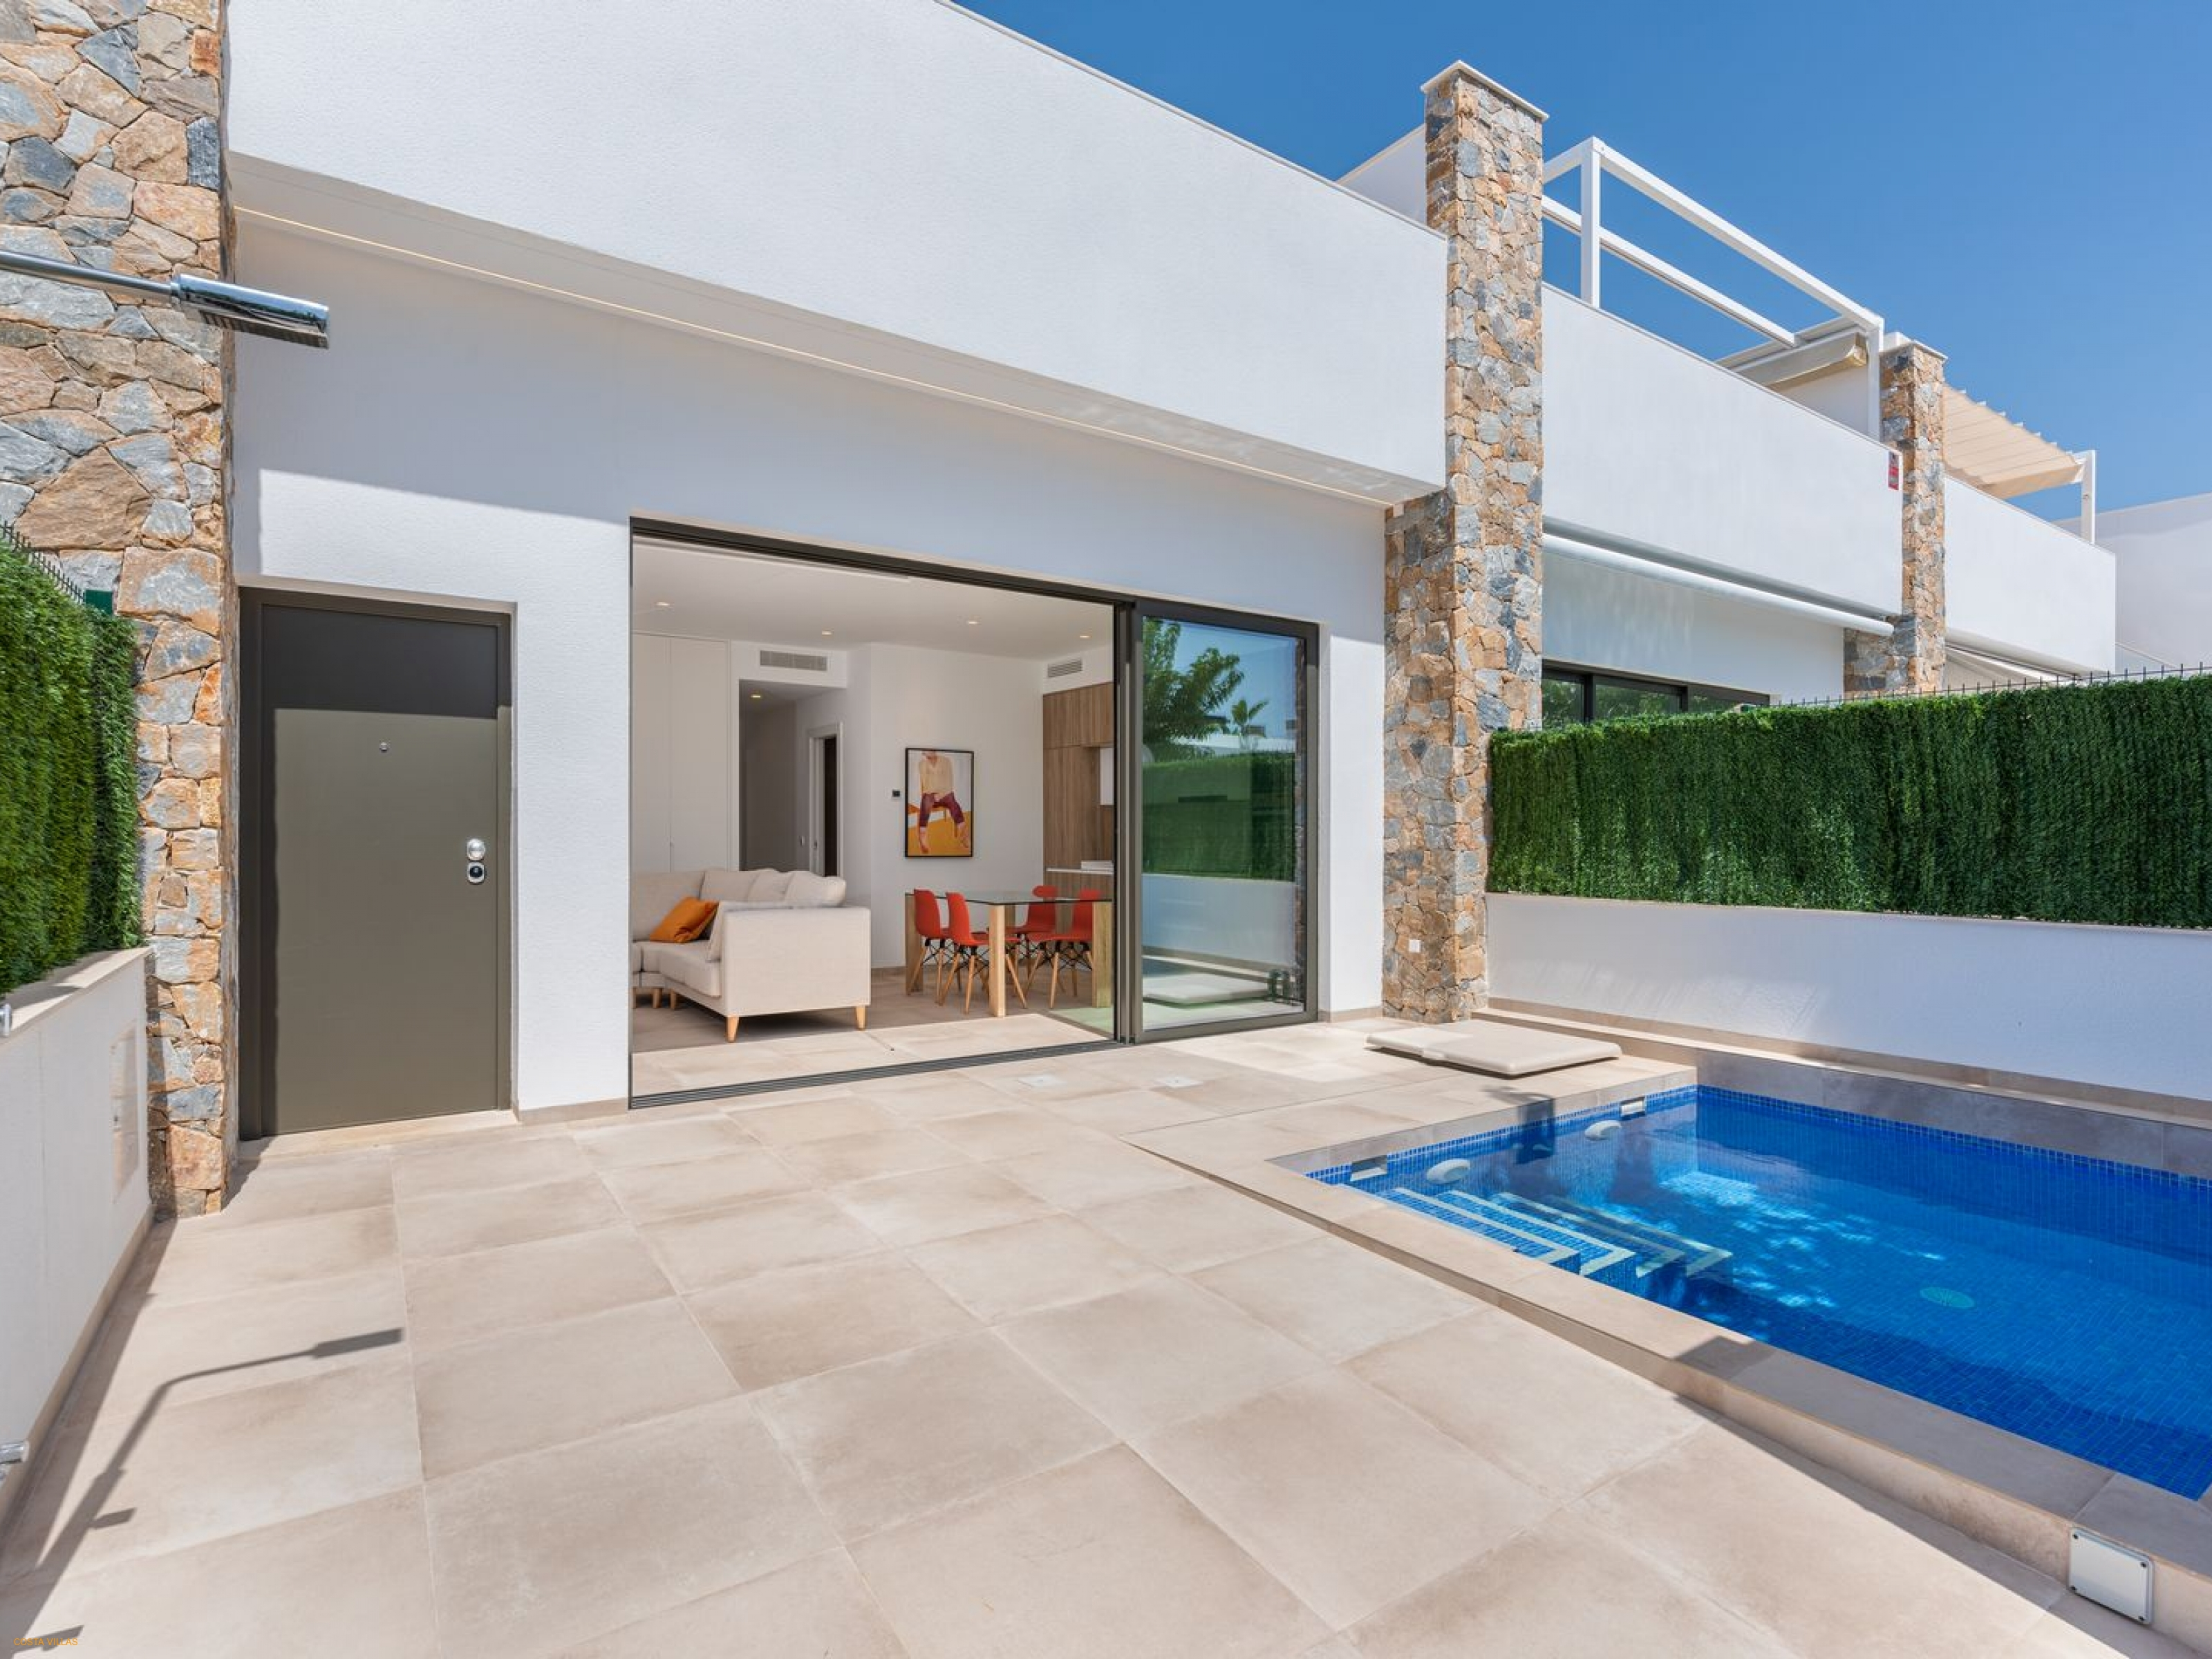 New Development of Villas with Private Pools